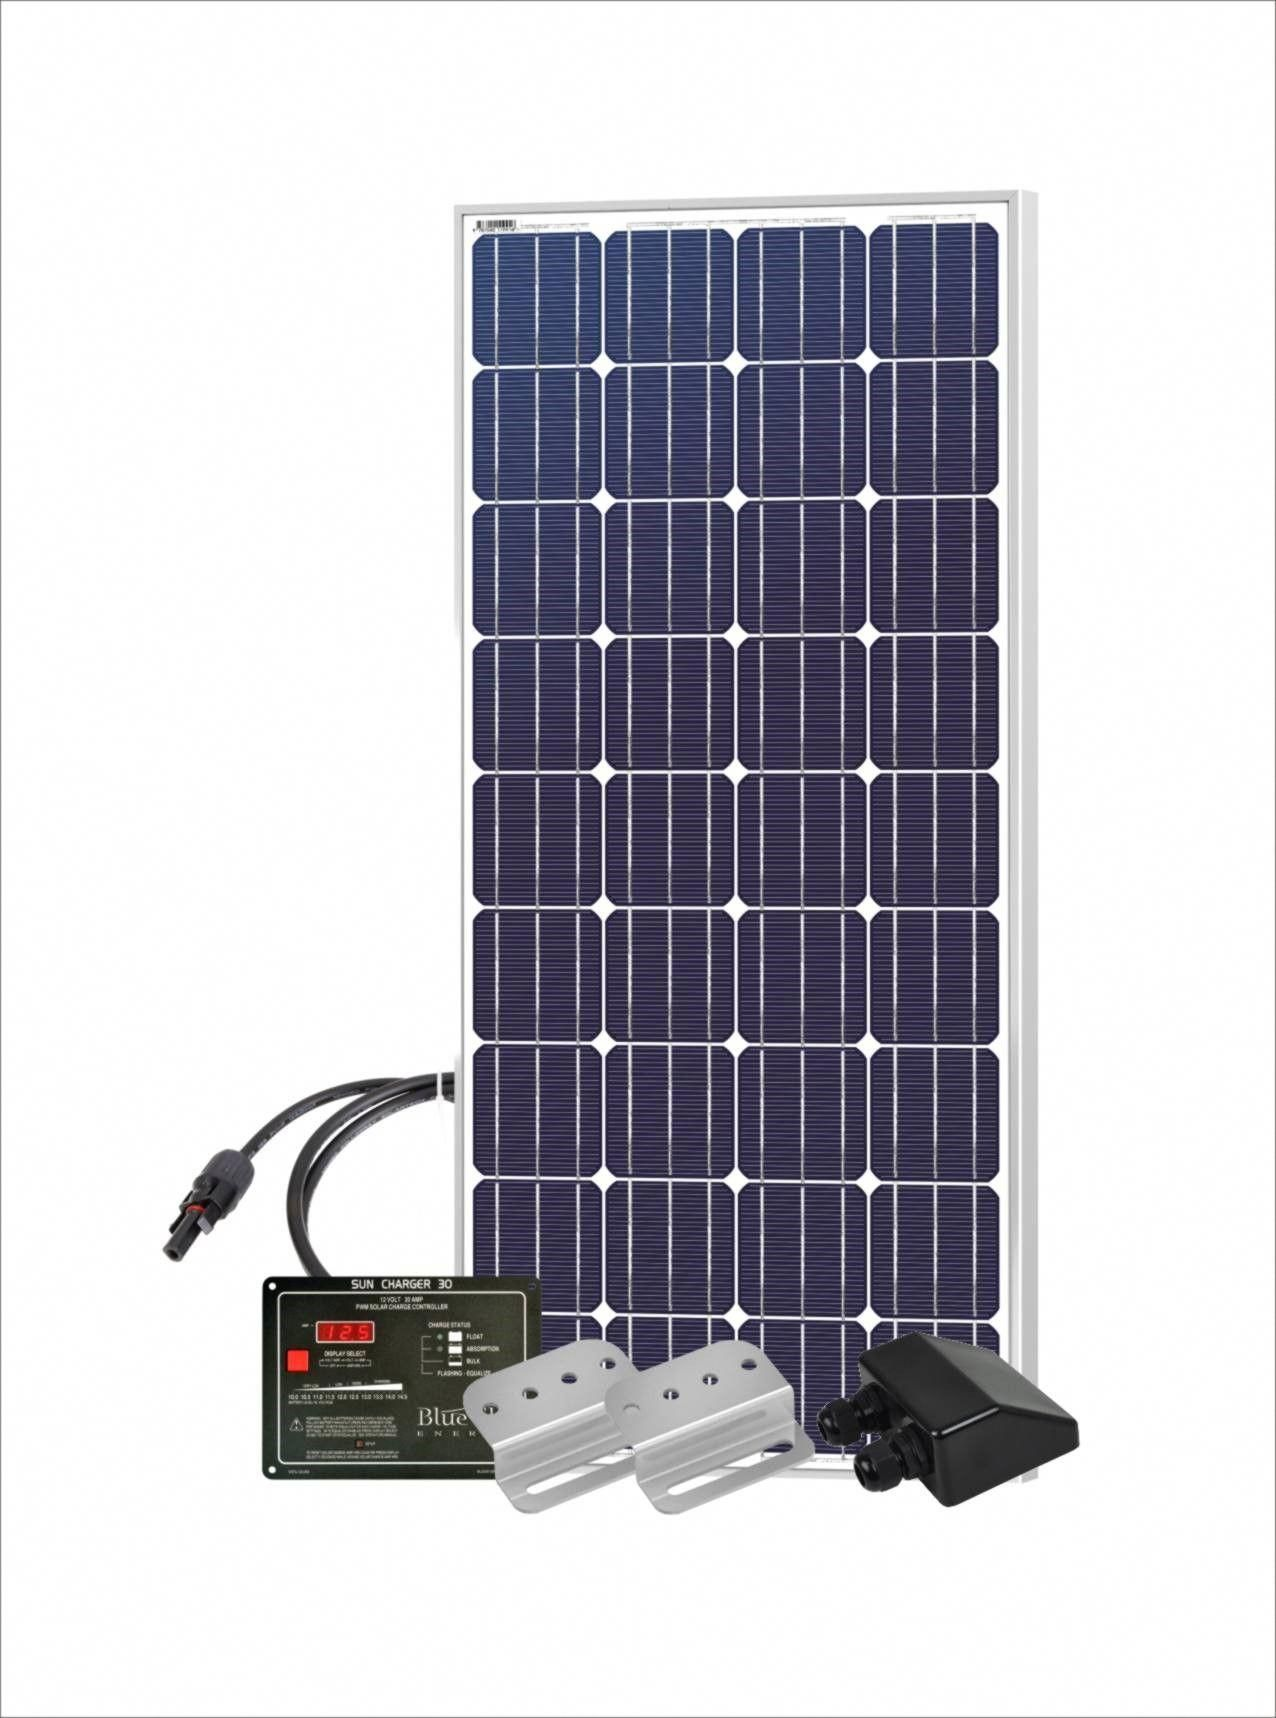 Rv Solar Panel Starter Kit Rv Solar Panels Best Solar Panels Solar Energy Panels